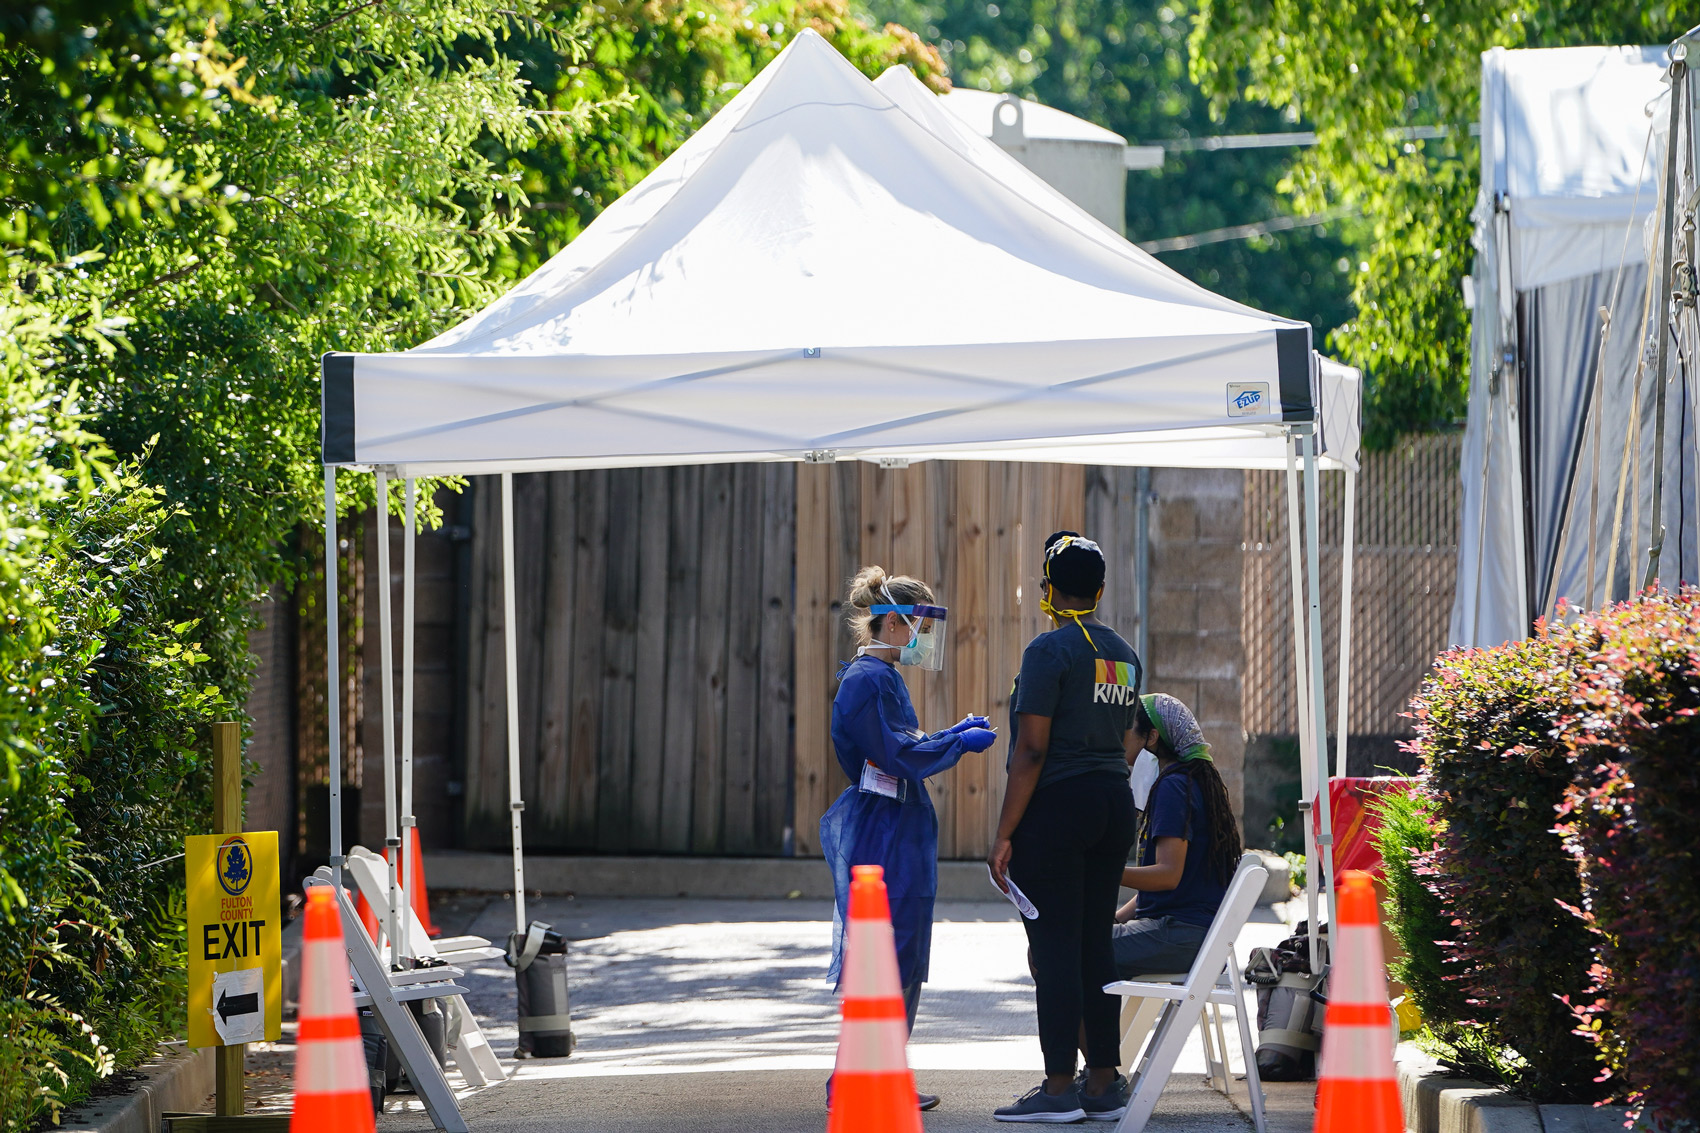 People get tested for COVID-19 at a free walk-up testing site on July 11 in Atlanta.